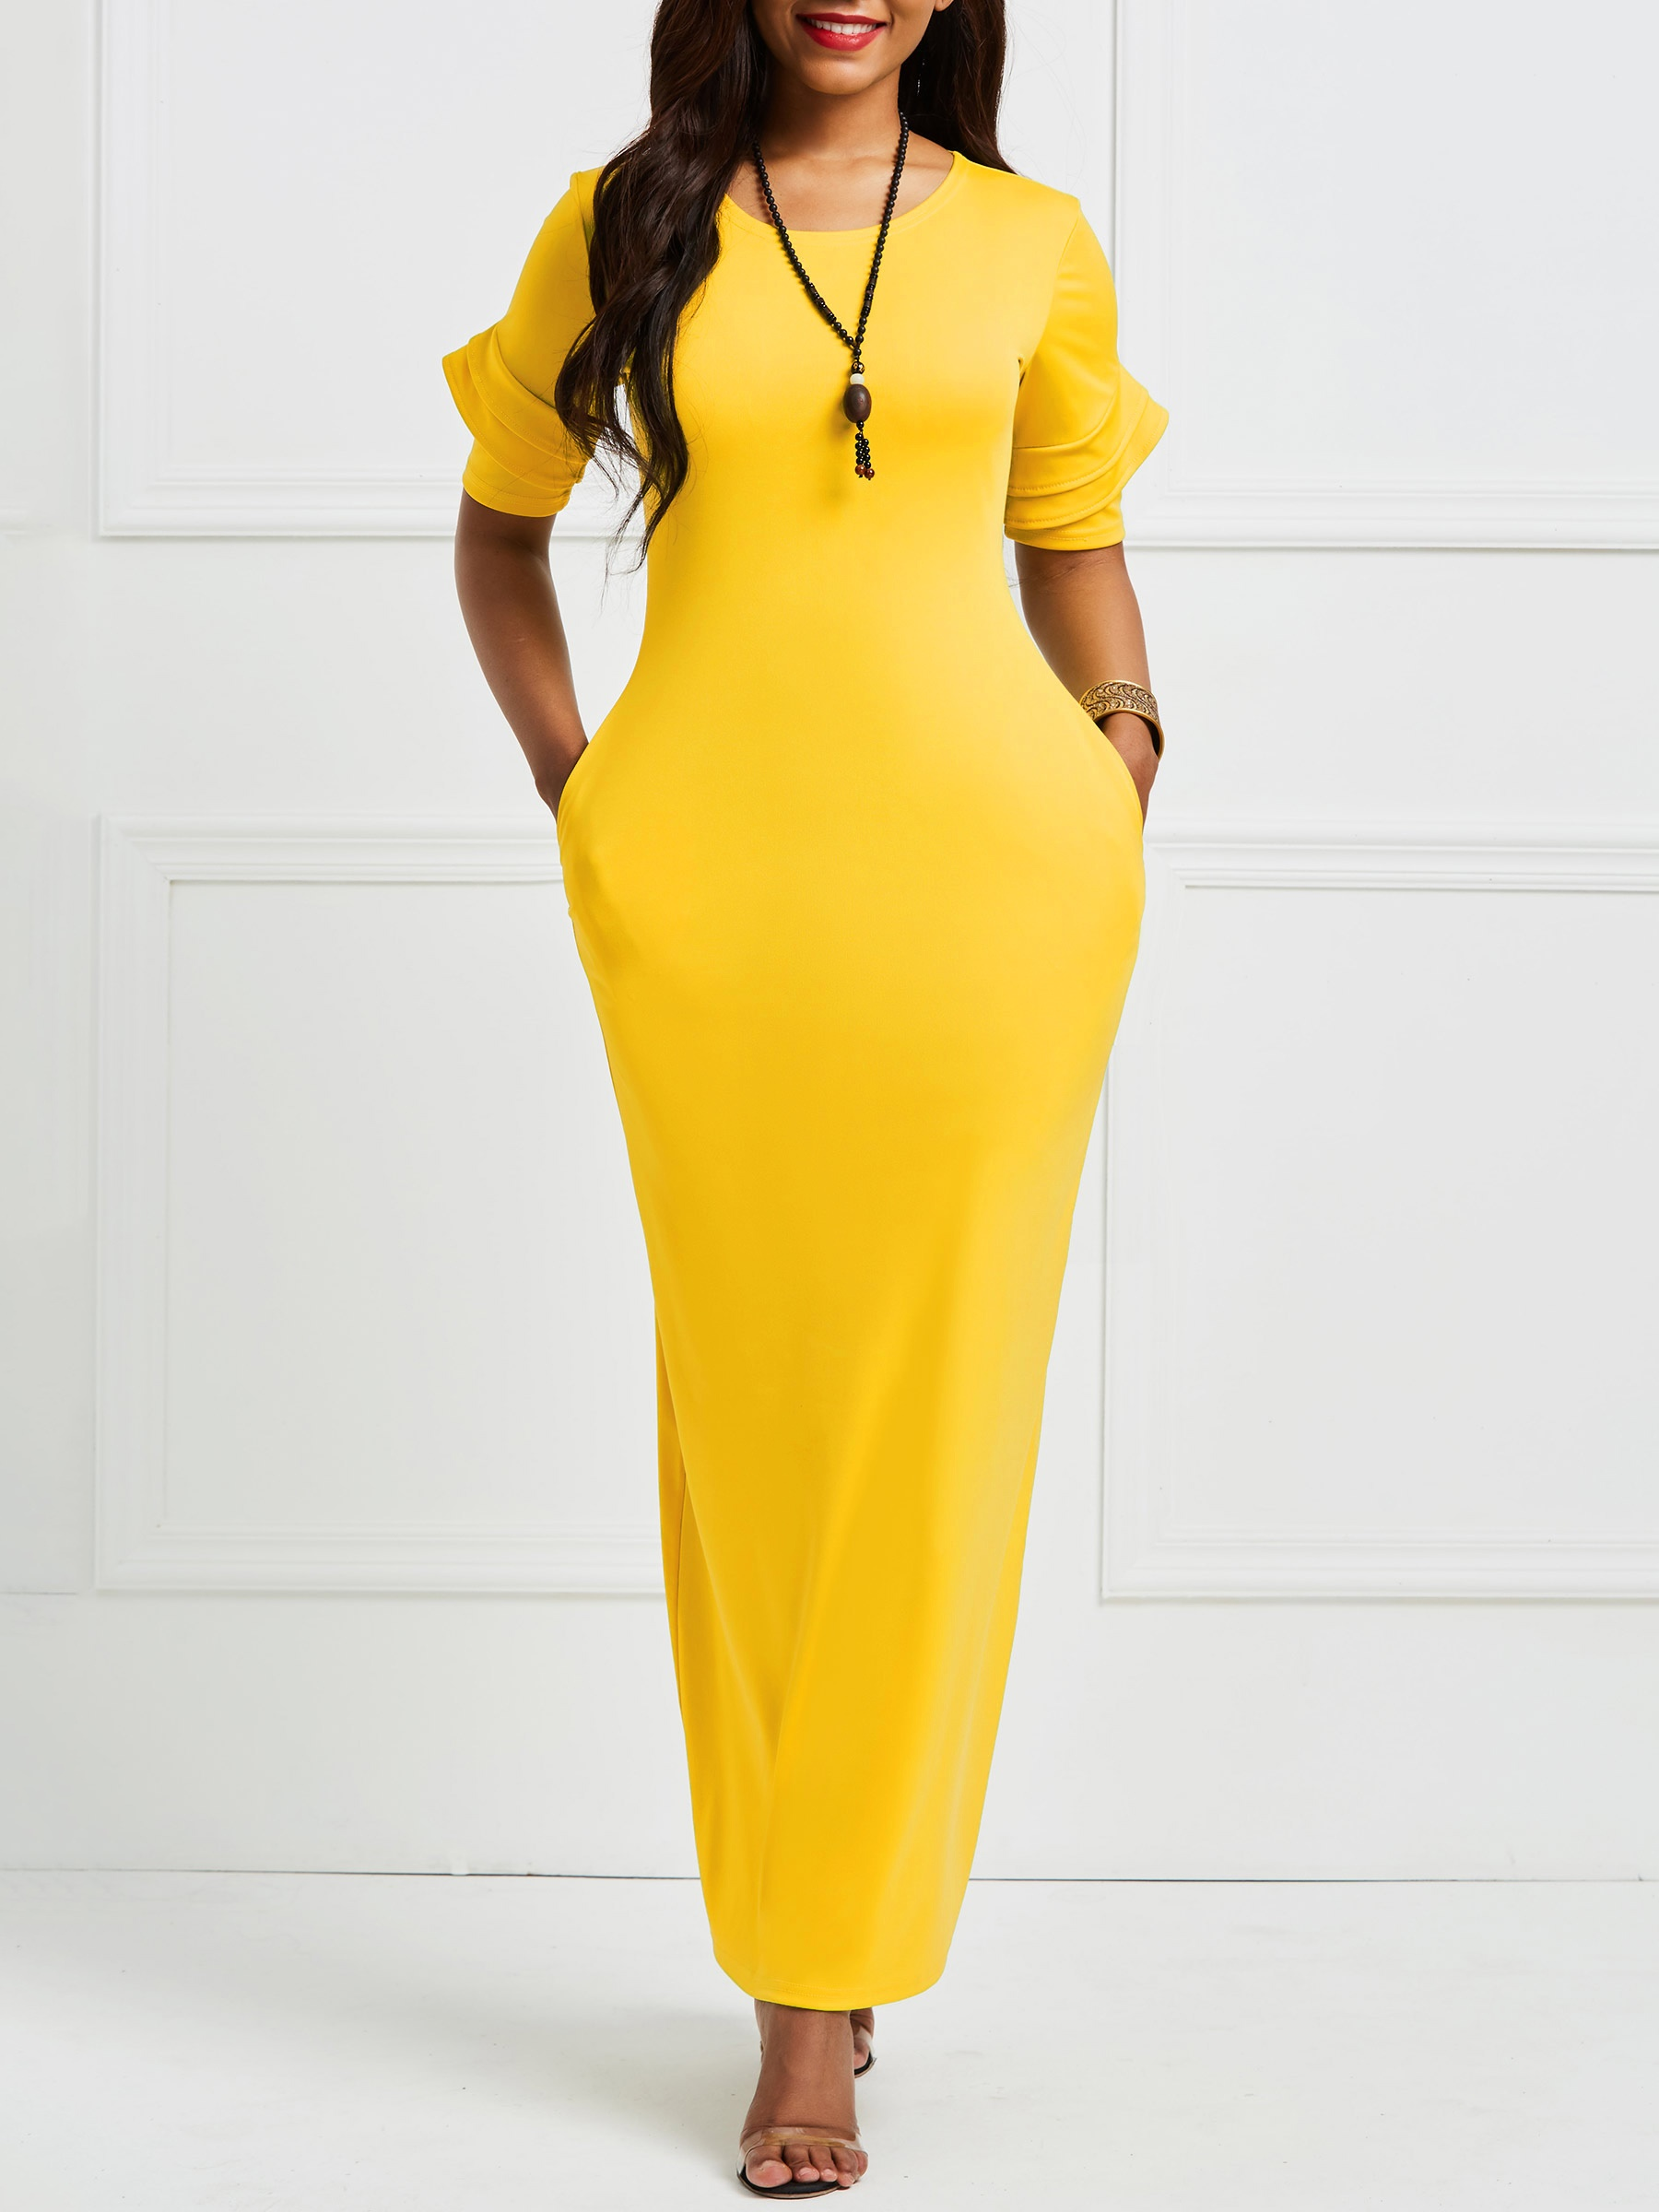 Ericdress Yellow Half Sleeves Patchwork Pullover Bodycon Dress 13319317